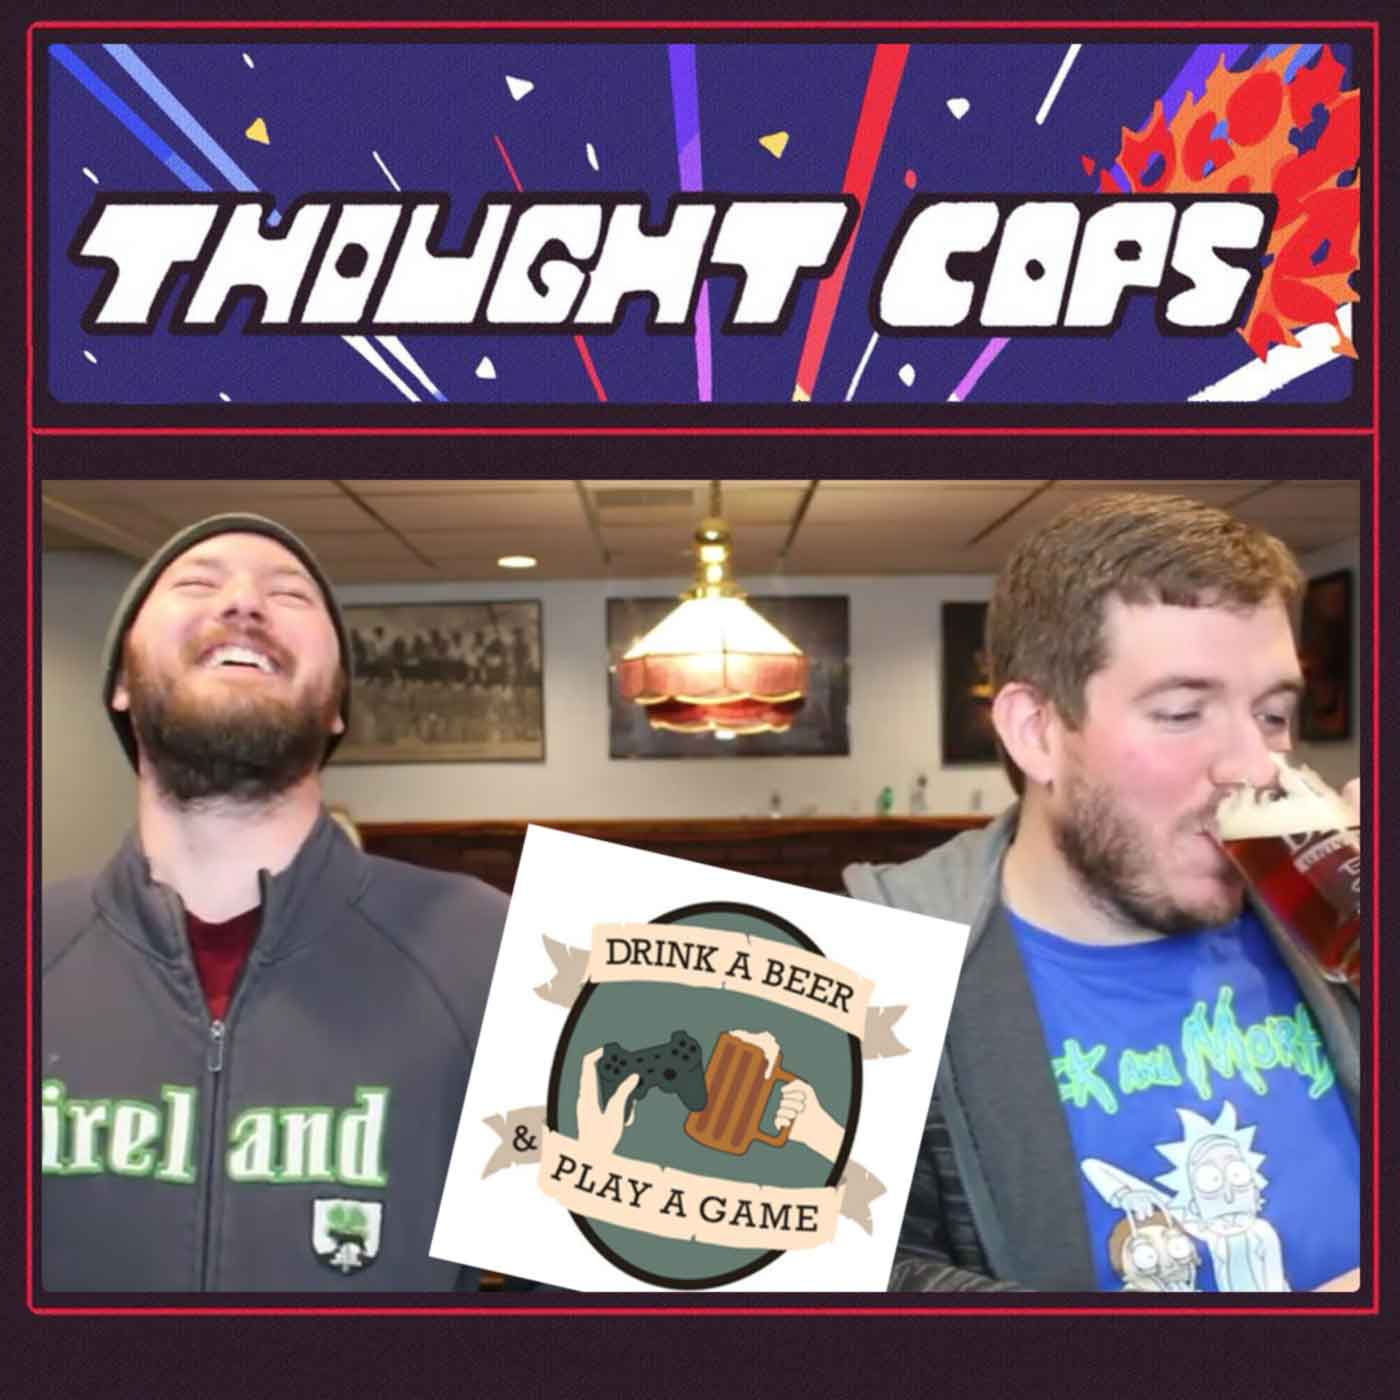 162-thought-cops-jim-brian-drink-beer-and-play-a-game